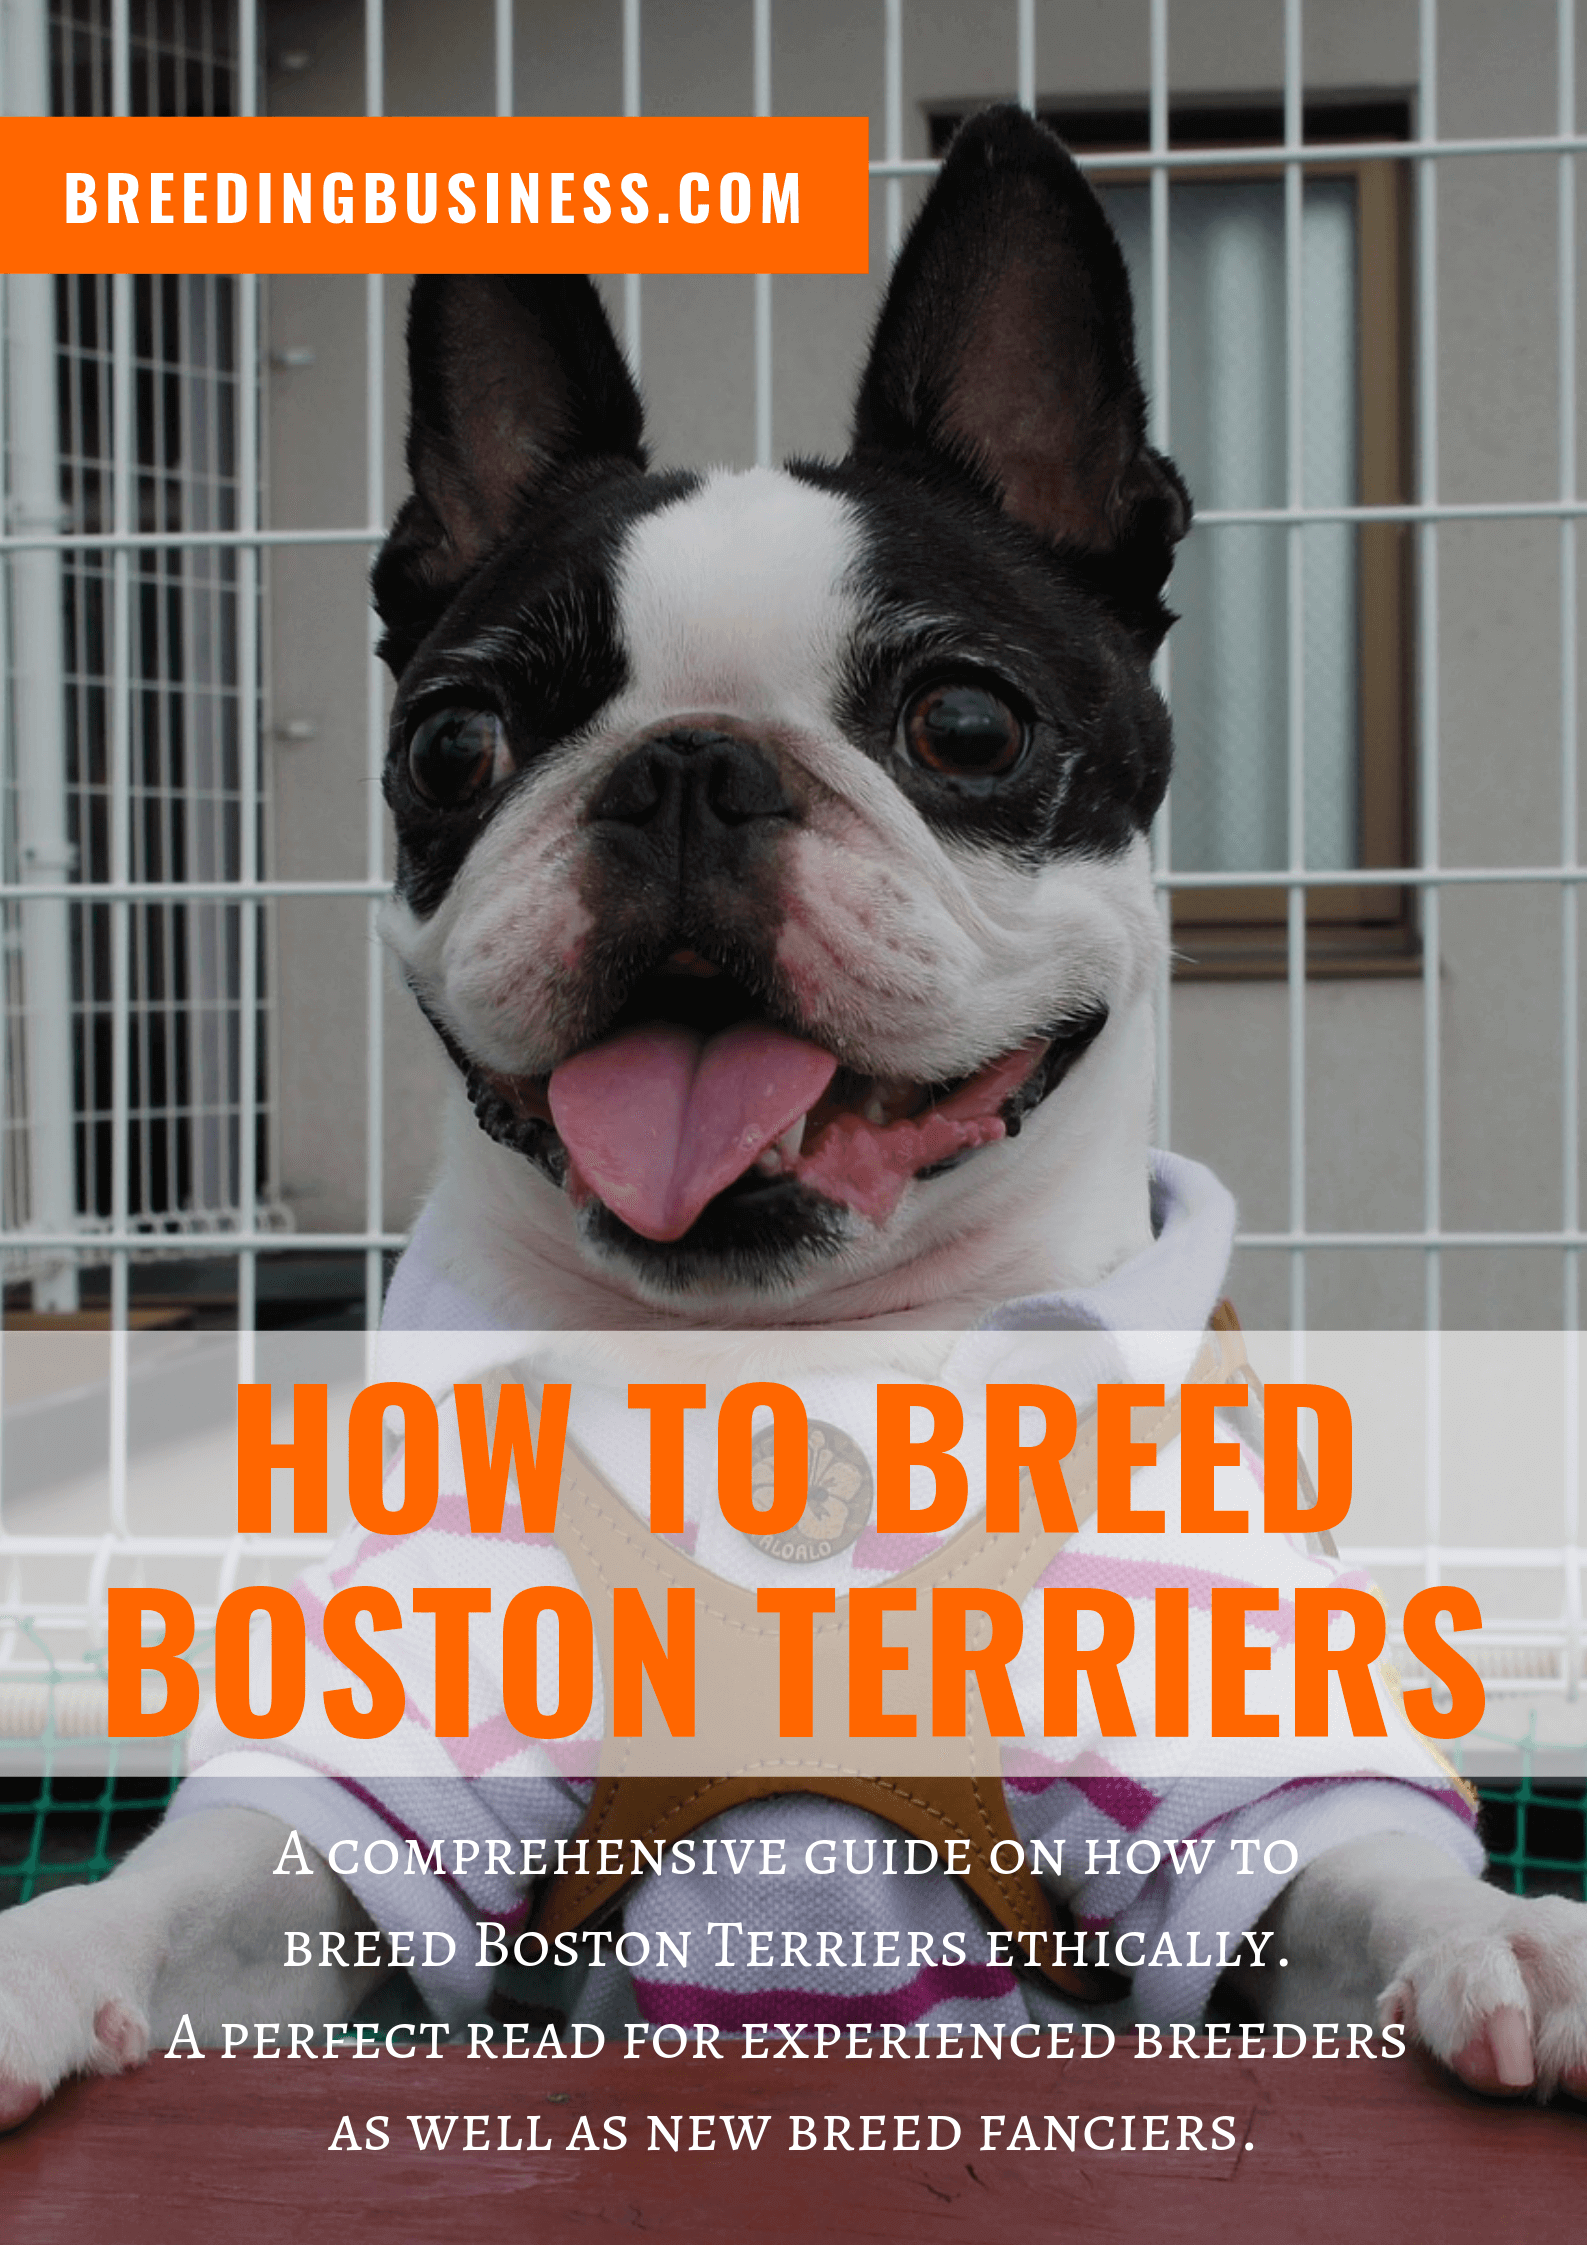 breeding Boston Terriers